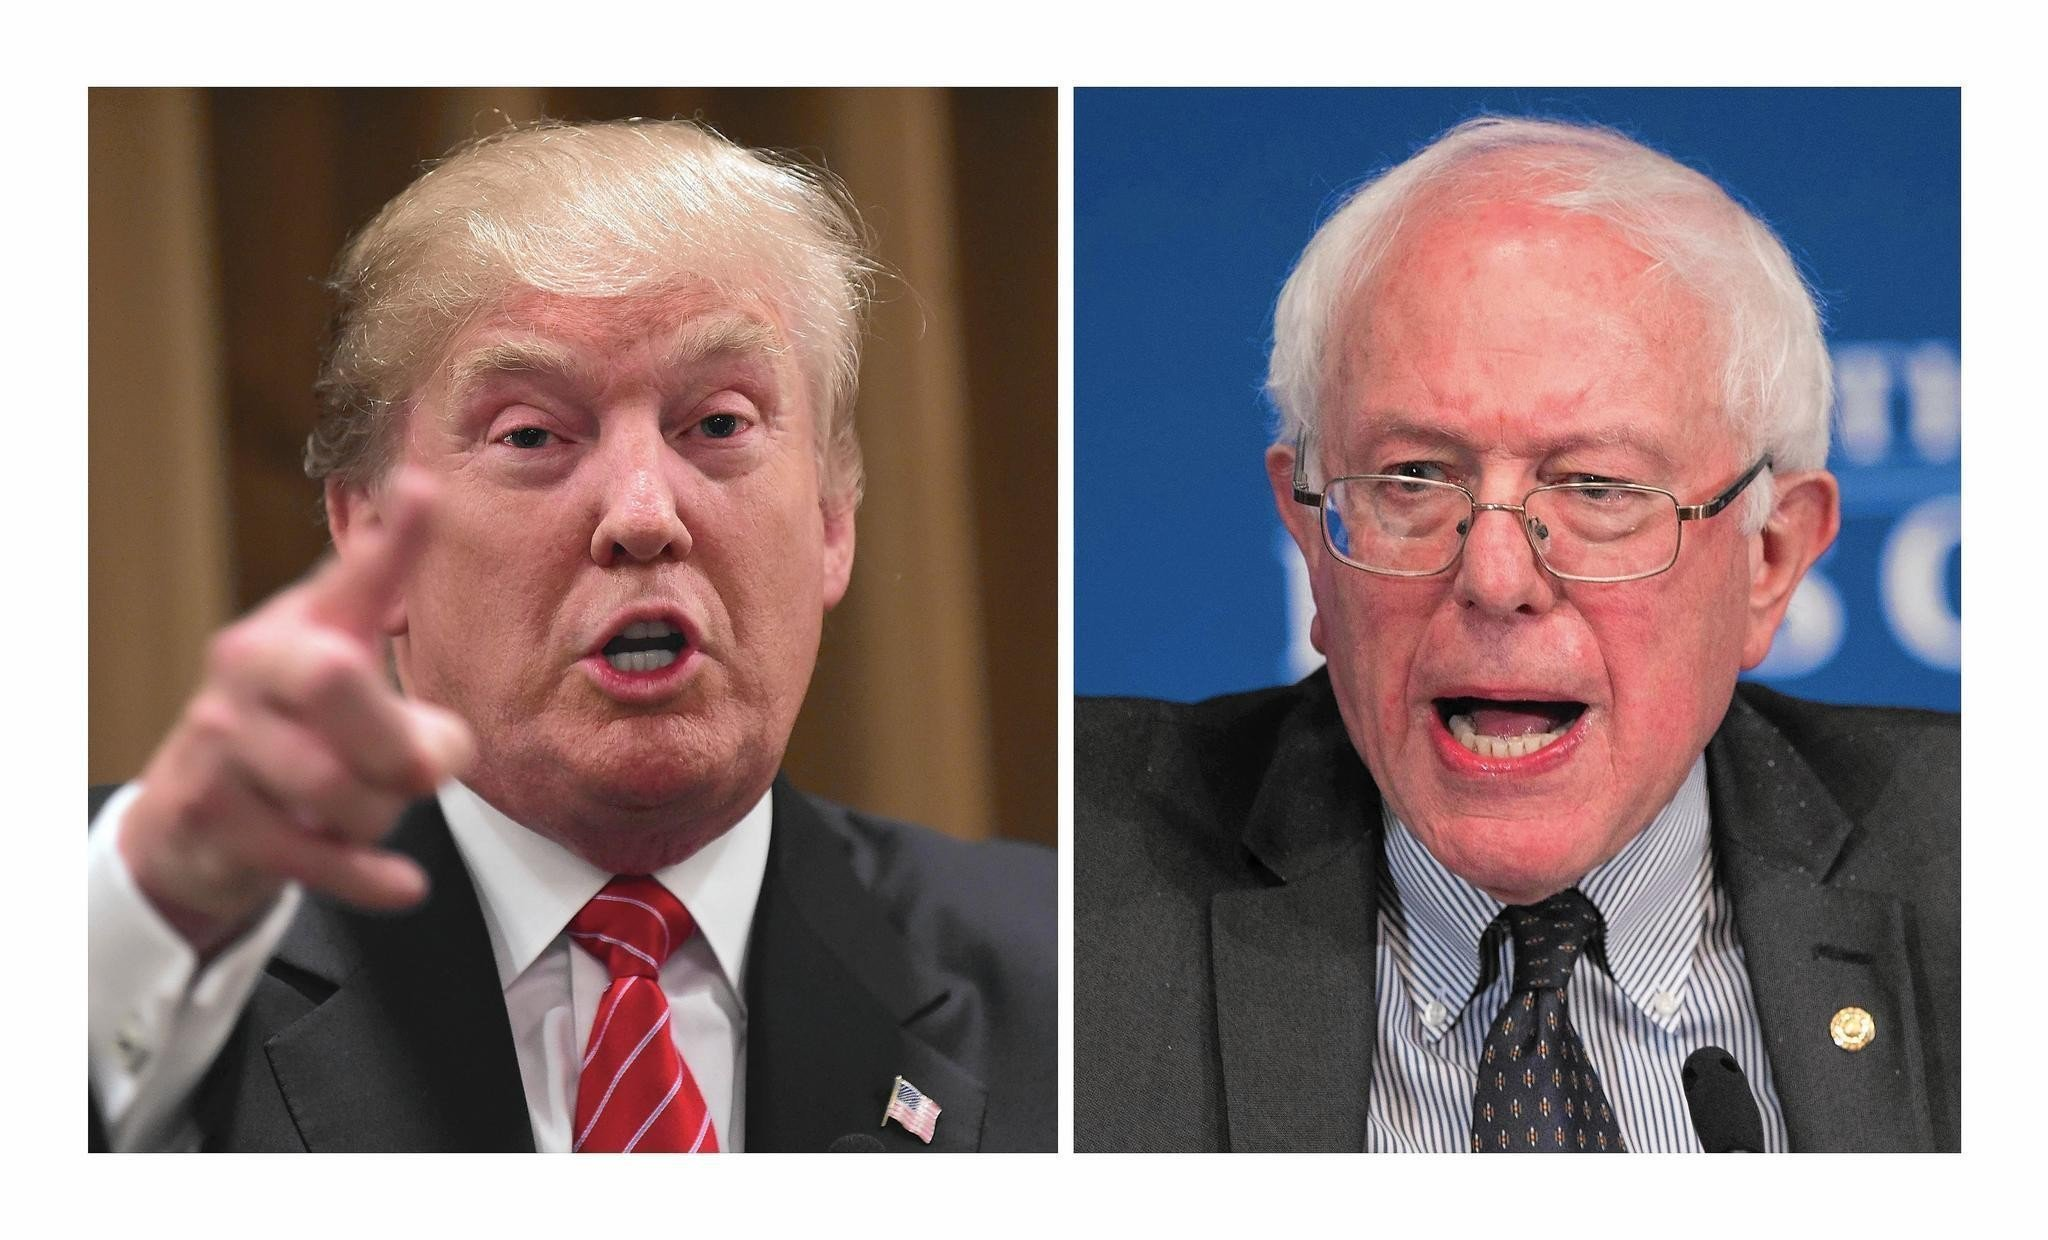 Bernie Sanders, Donald Trump and the stories they tell